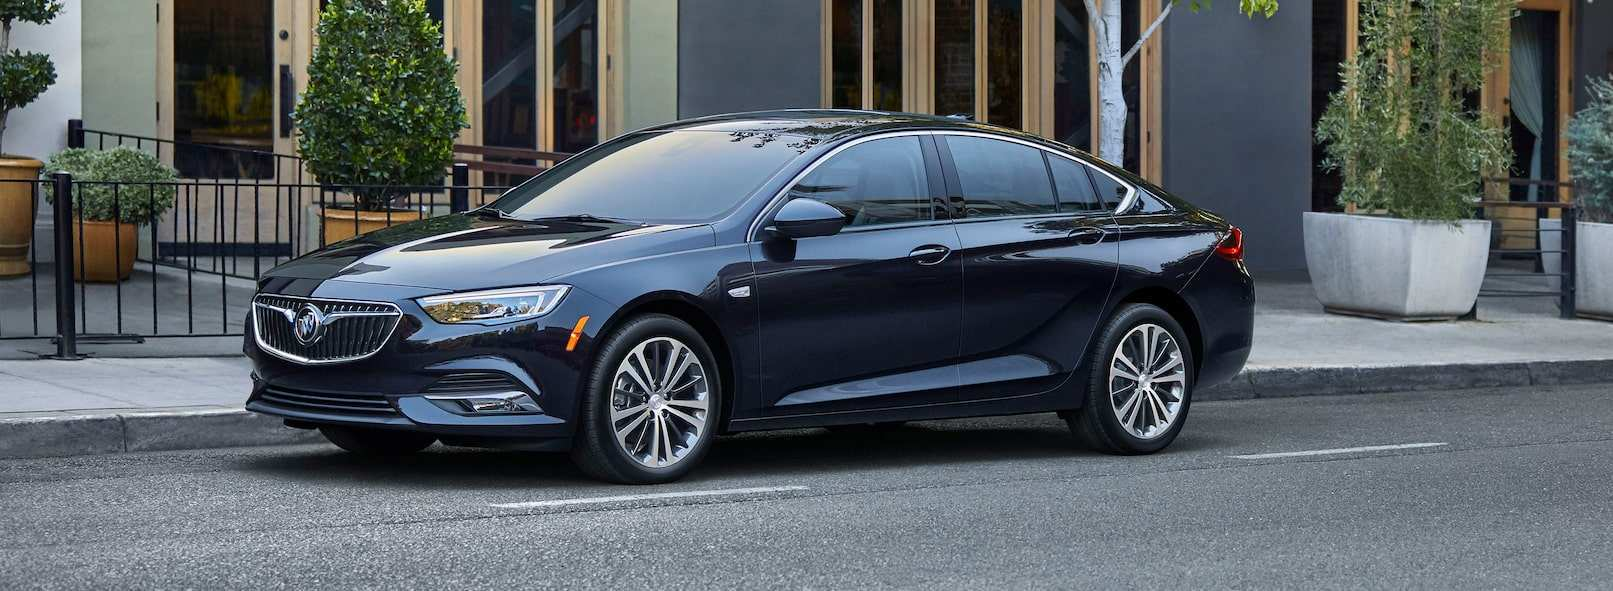 31 New 2019 Buick Verano Concept And Review